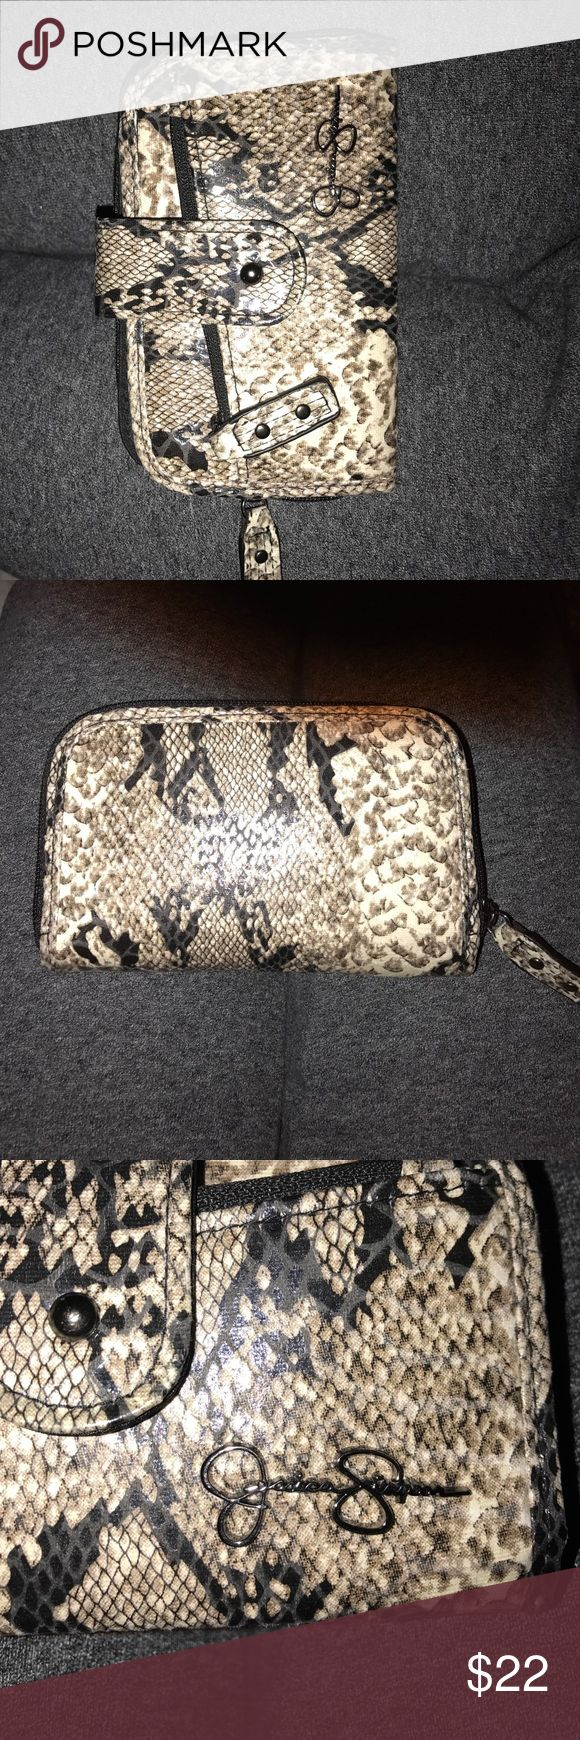 Jessica Simpson Wallet Snakeskin Jessica Simpson Snake Print Wallet...2 Snakeskin Attachments to either make it a wristlet or a small cross body bag!! Jessica Simpson Bags Wallets